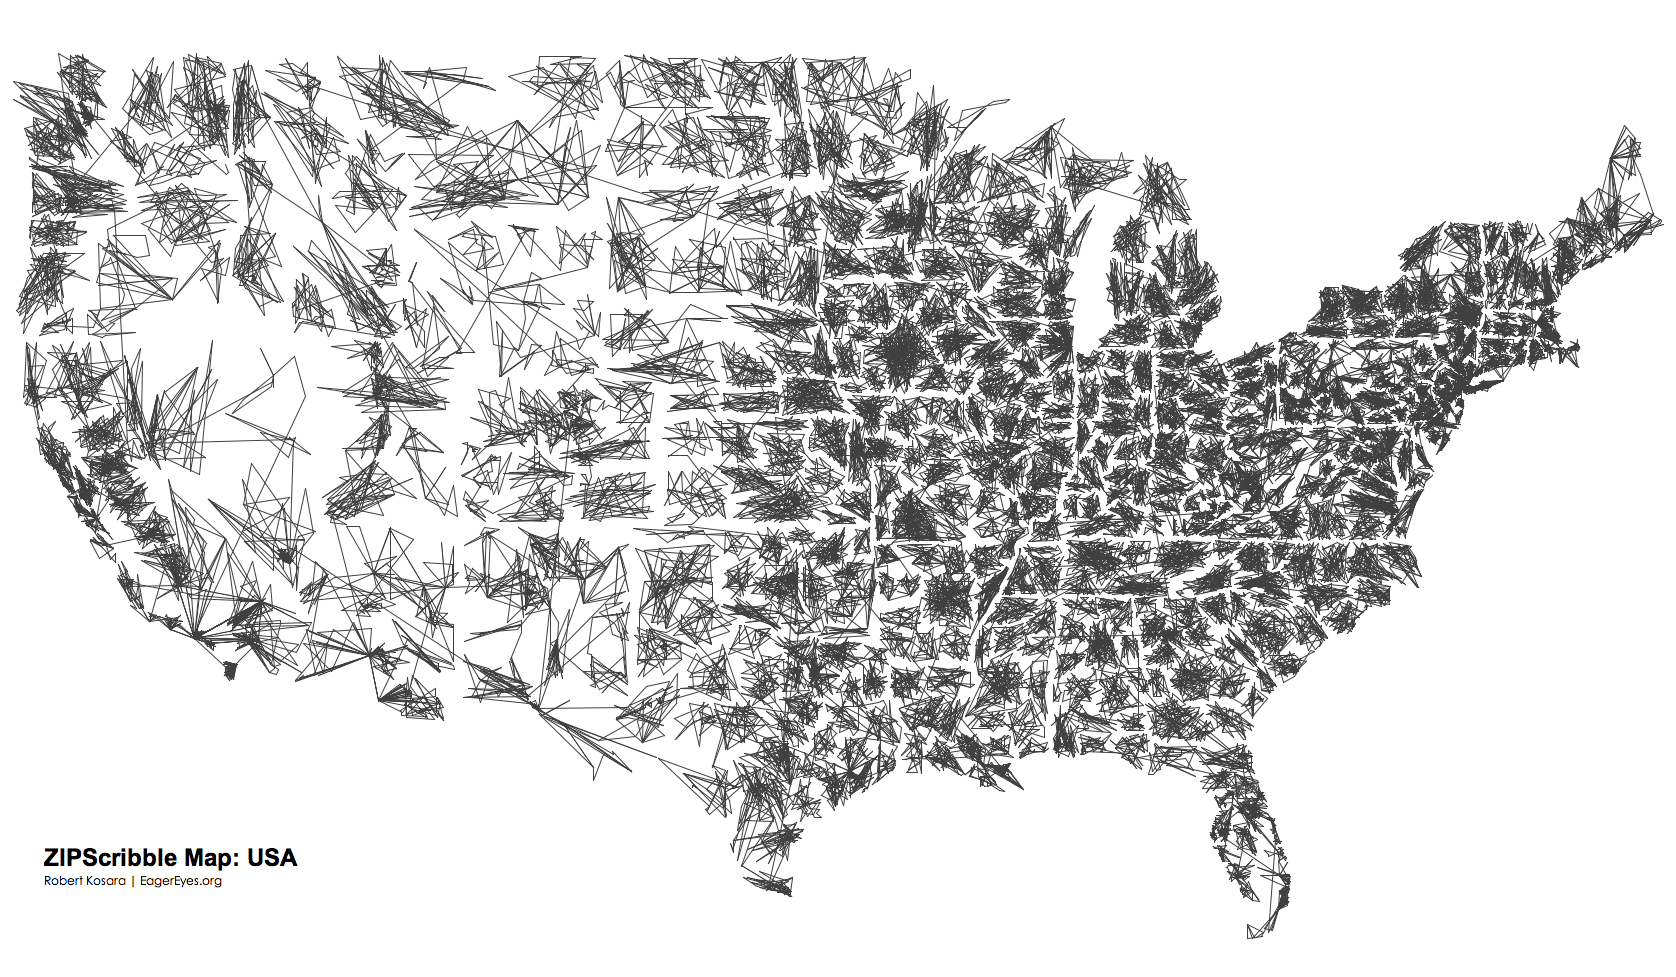 The US ZIPScribble Map - Black and white map of us